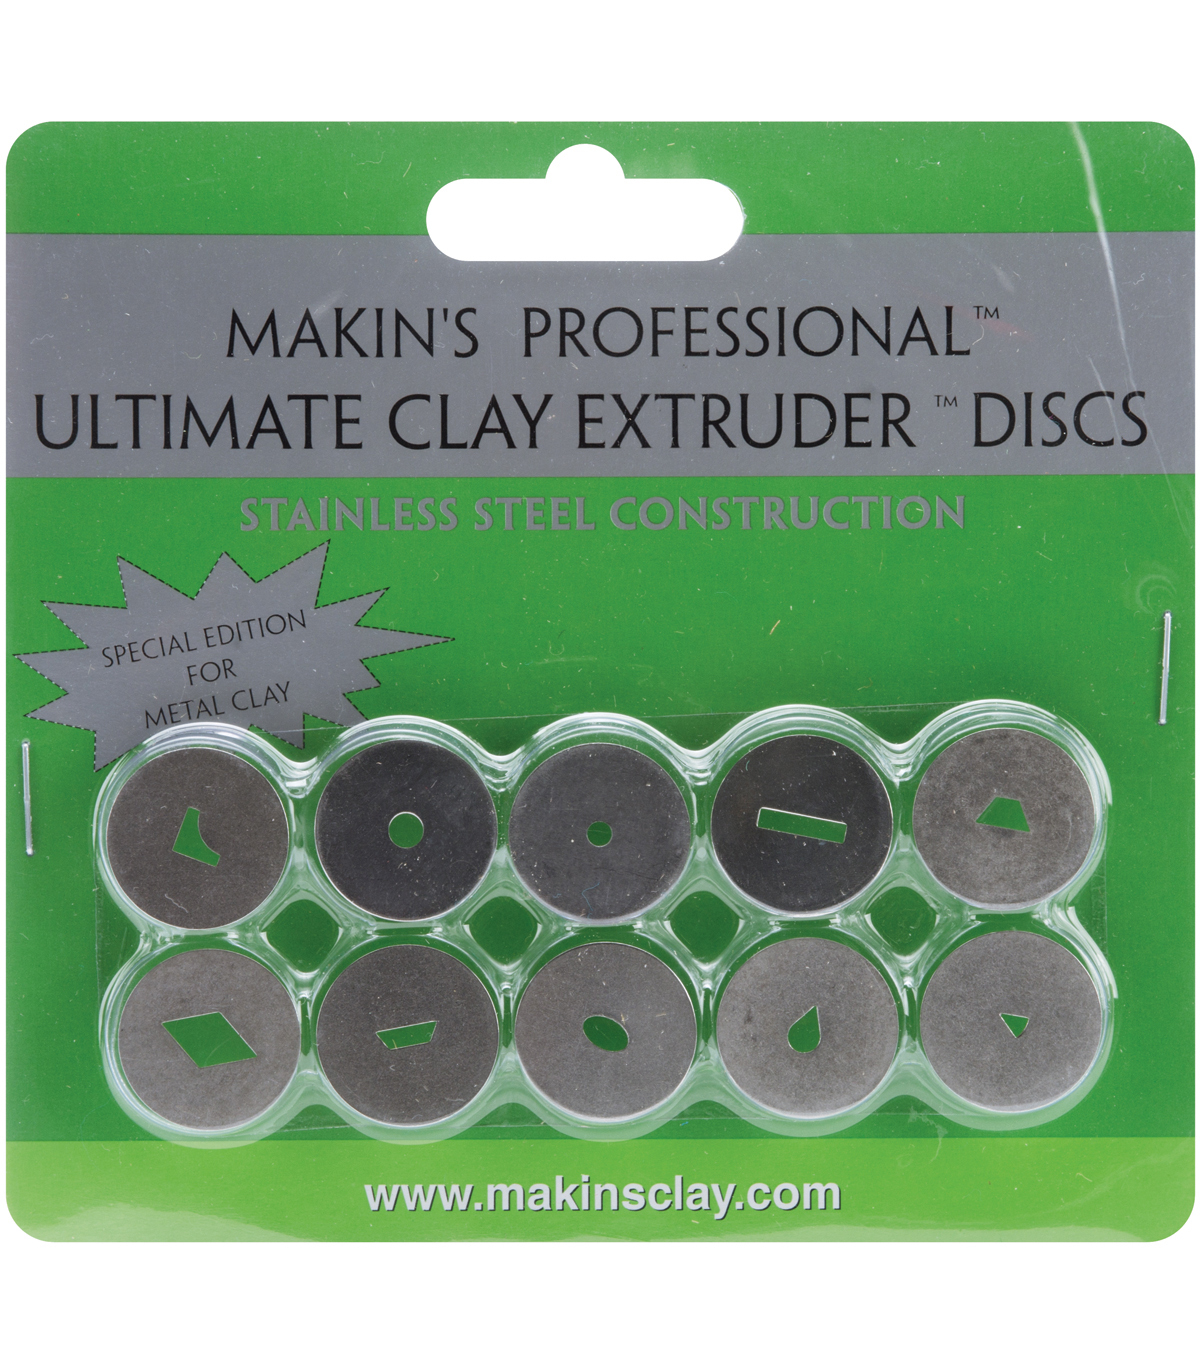 Makin\u0027s Professional Ultimate Clay Extruder Discs 10/Pkg-Stainless Steel For Metal Clay